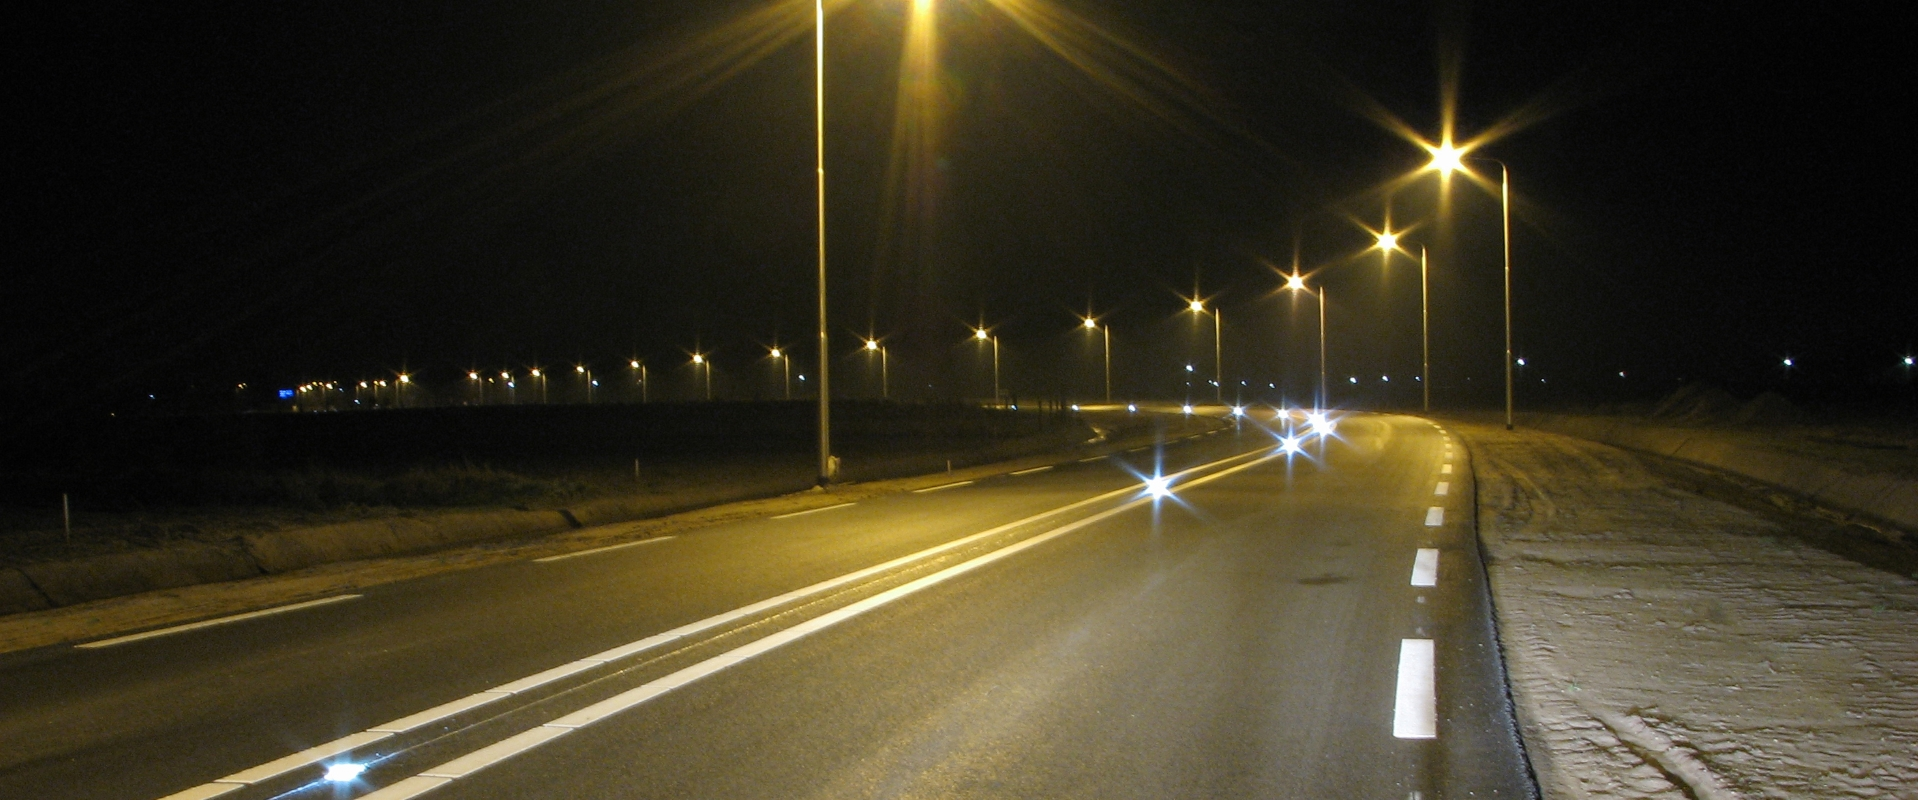 Dangerous Curve LED Road light